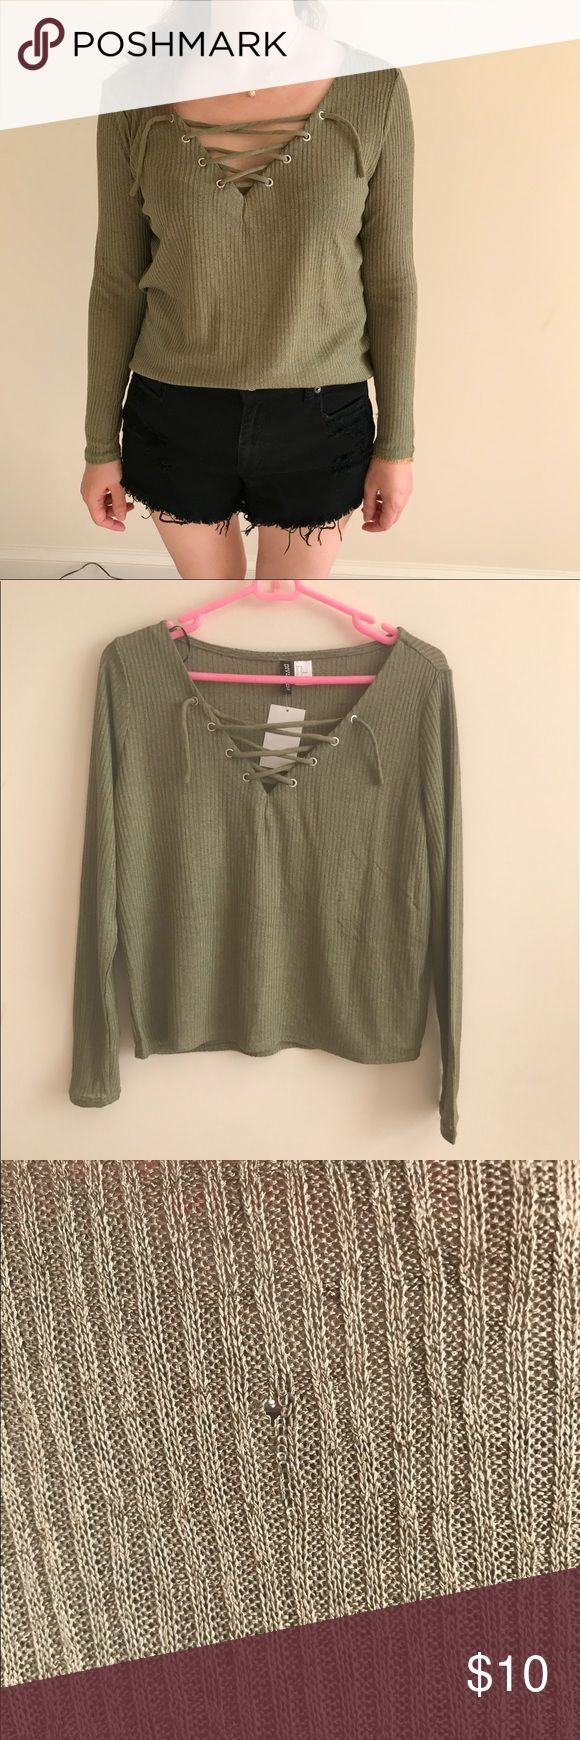 Olive green lace up shirt Cute olive green lace up shirt! There is a minor hole in the back but it is barely noticeable! 😊 H&M Tops